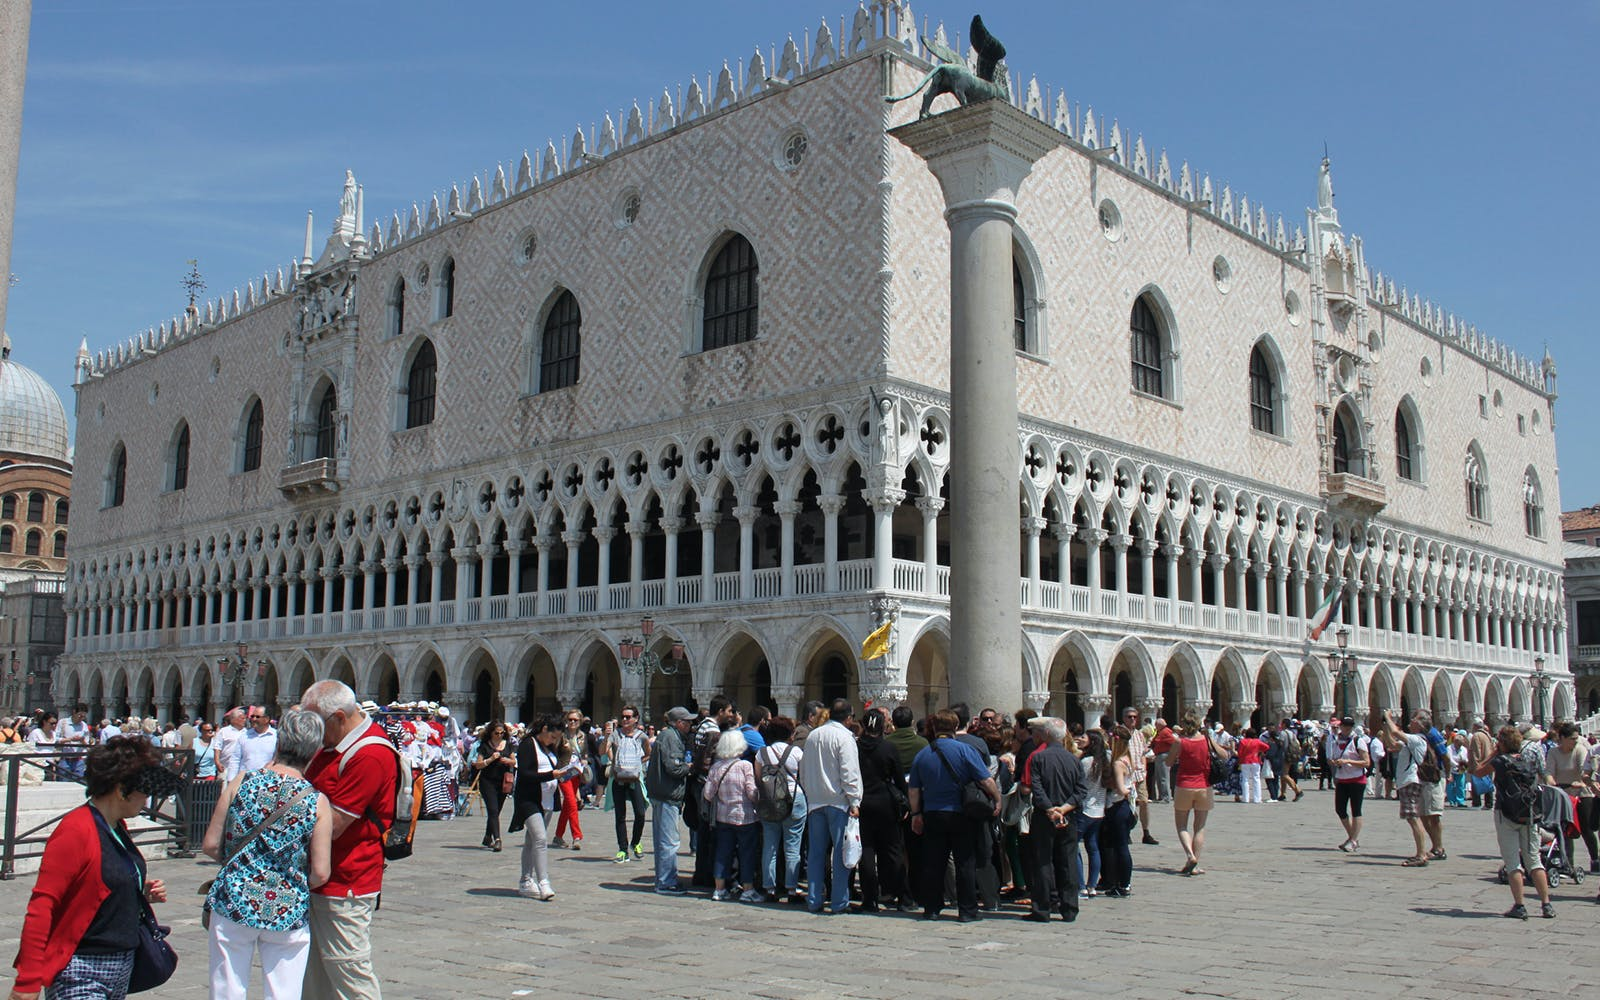 skip the line: guided tour of st. mark's basilica & doge's palace + the royal pa-4